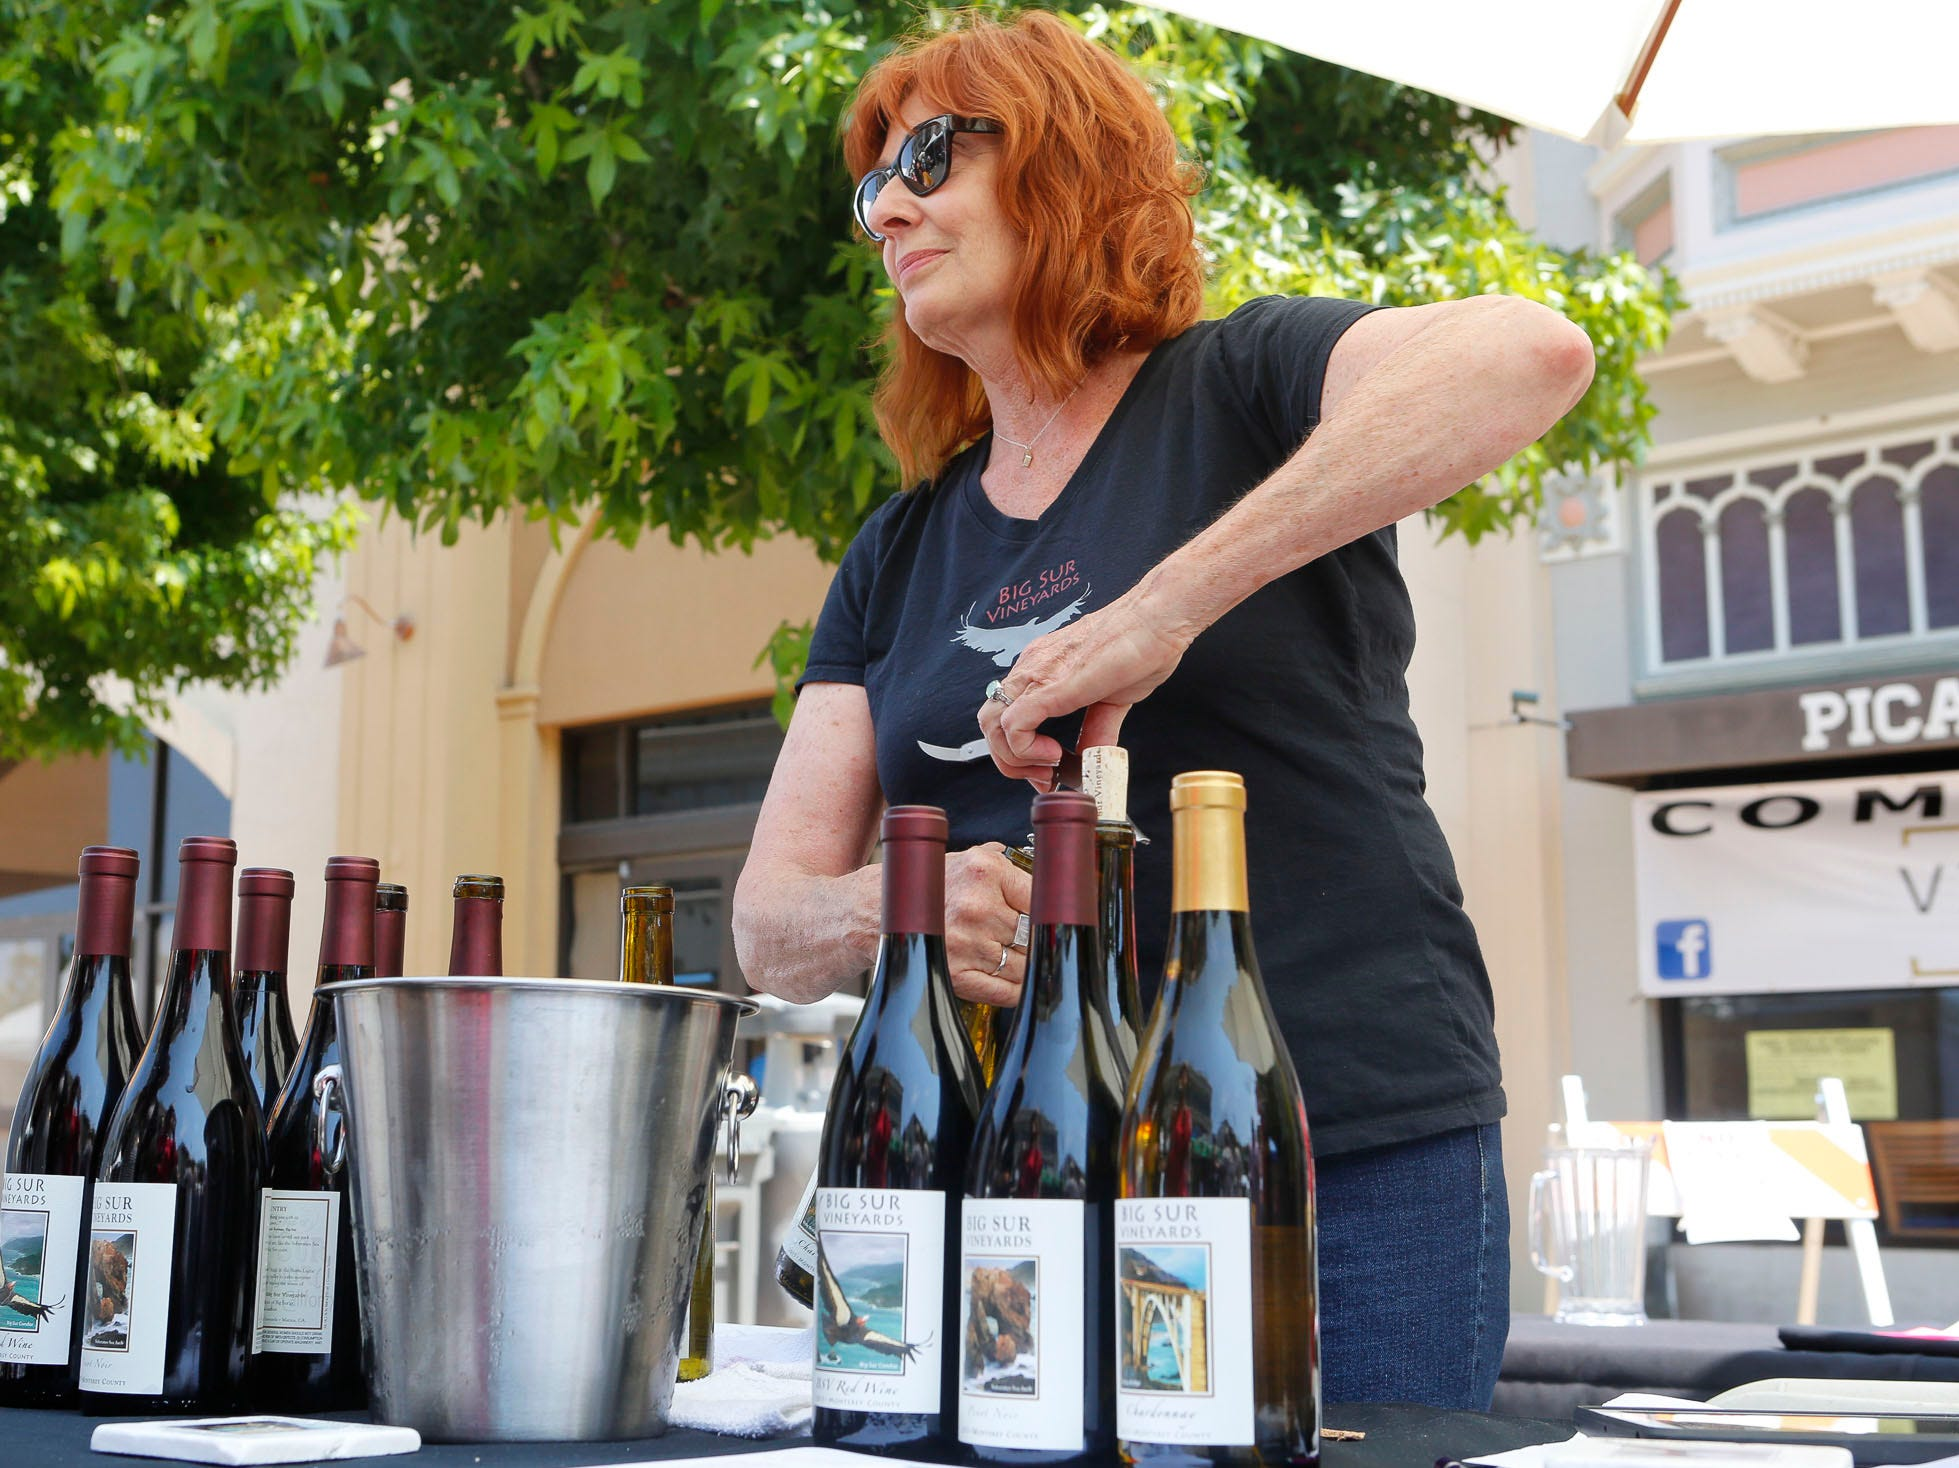 A vintner pulls a cork out of a bottle of wine during the 2018 Salinas Valley Food and Wine Festival which takes place on Main Street in Old Town Salinas on Saturday, August 11, 2018.